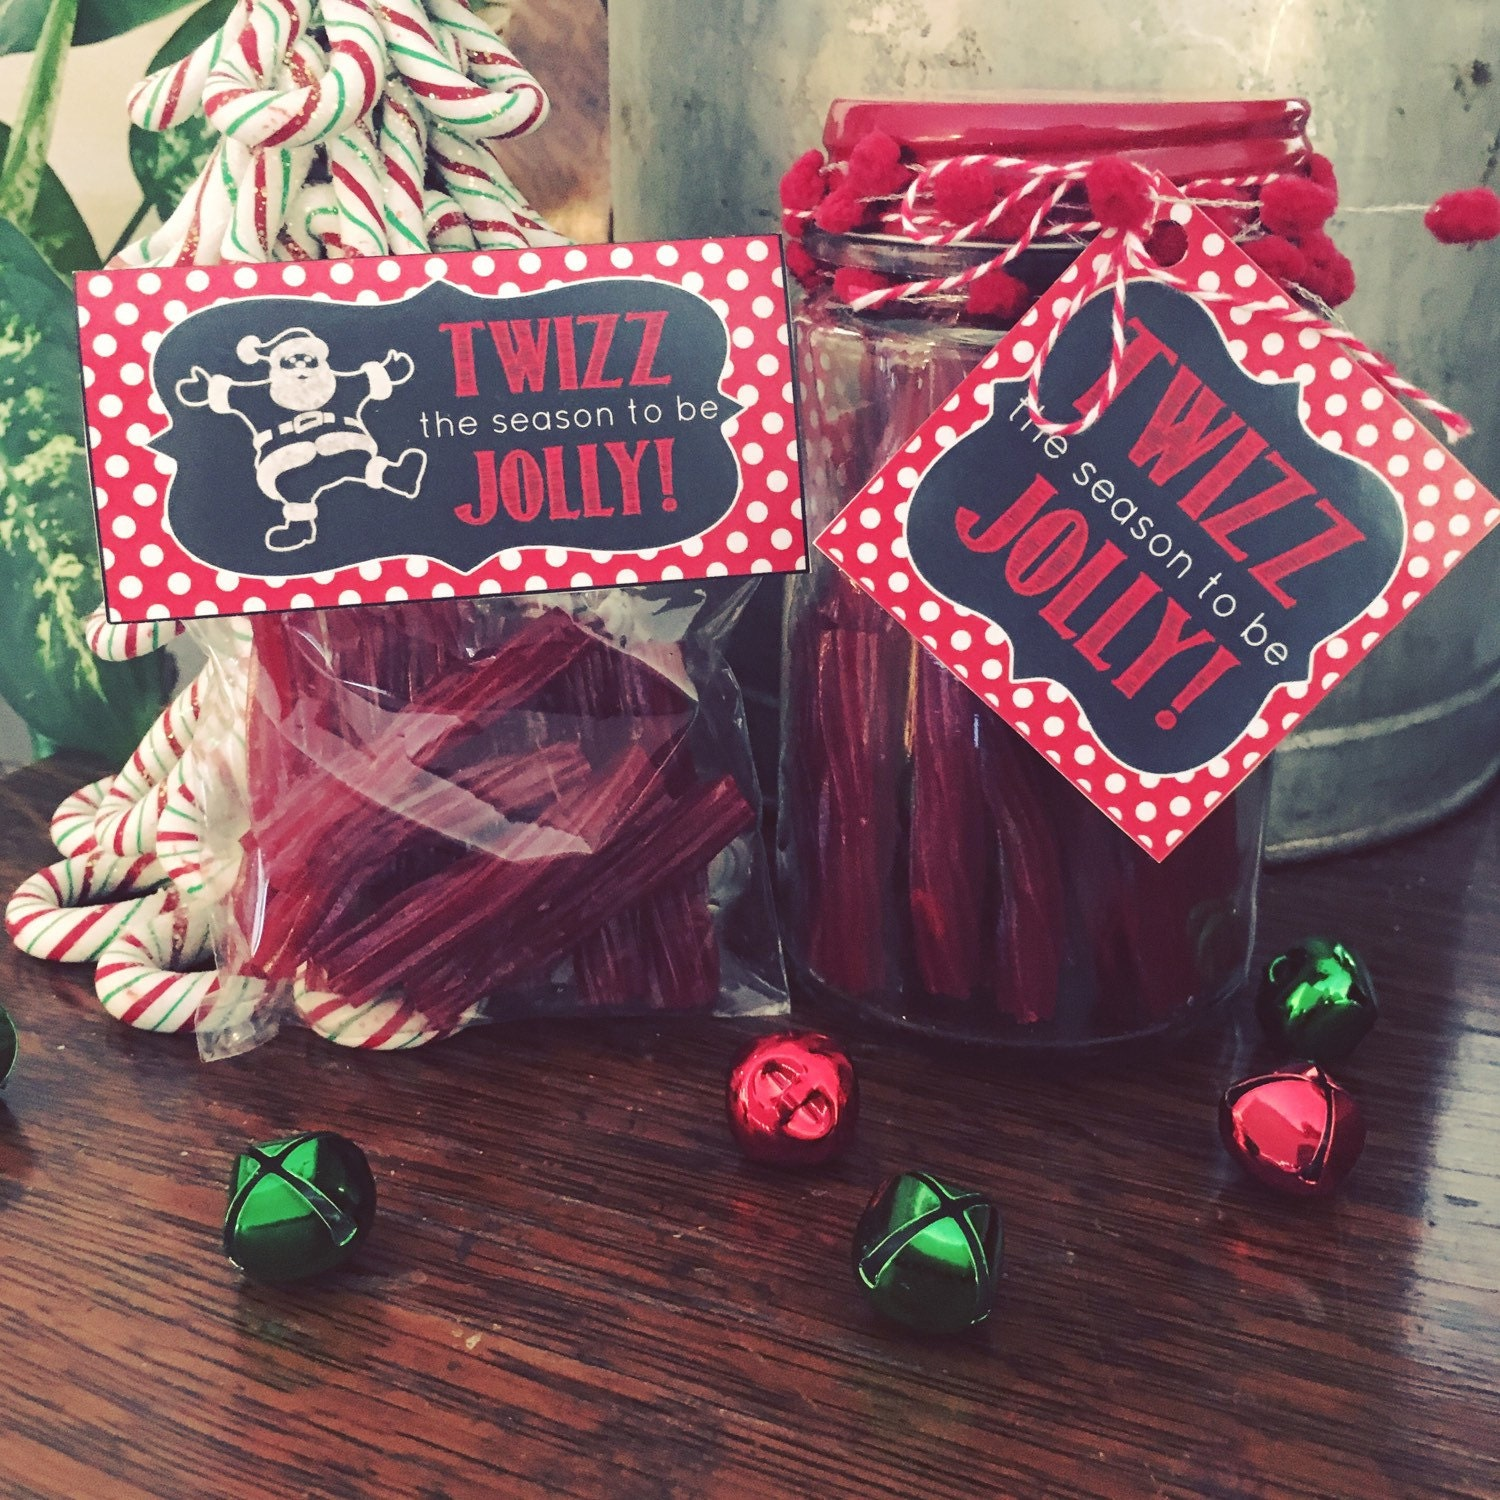 Twizz The Season Twizzler Themed Christmas Gift Tag And Bag Etsy